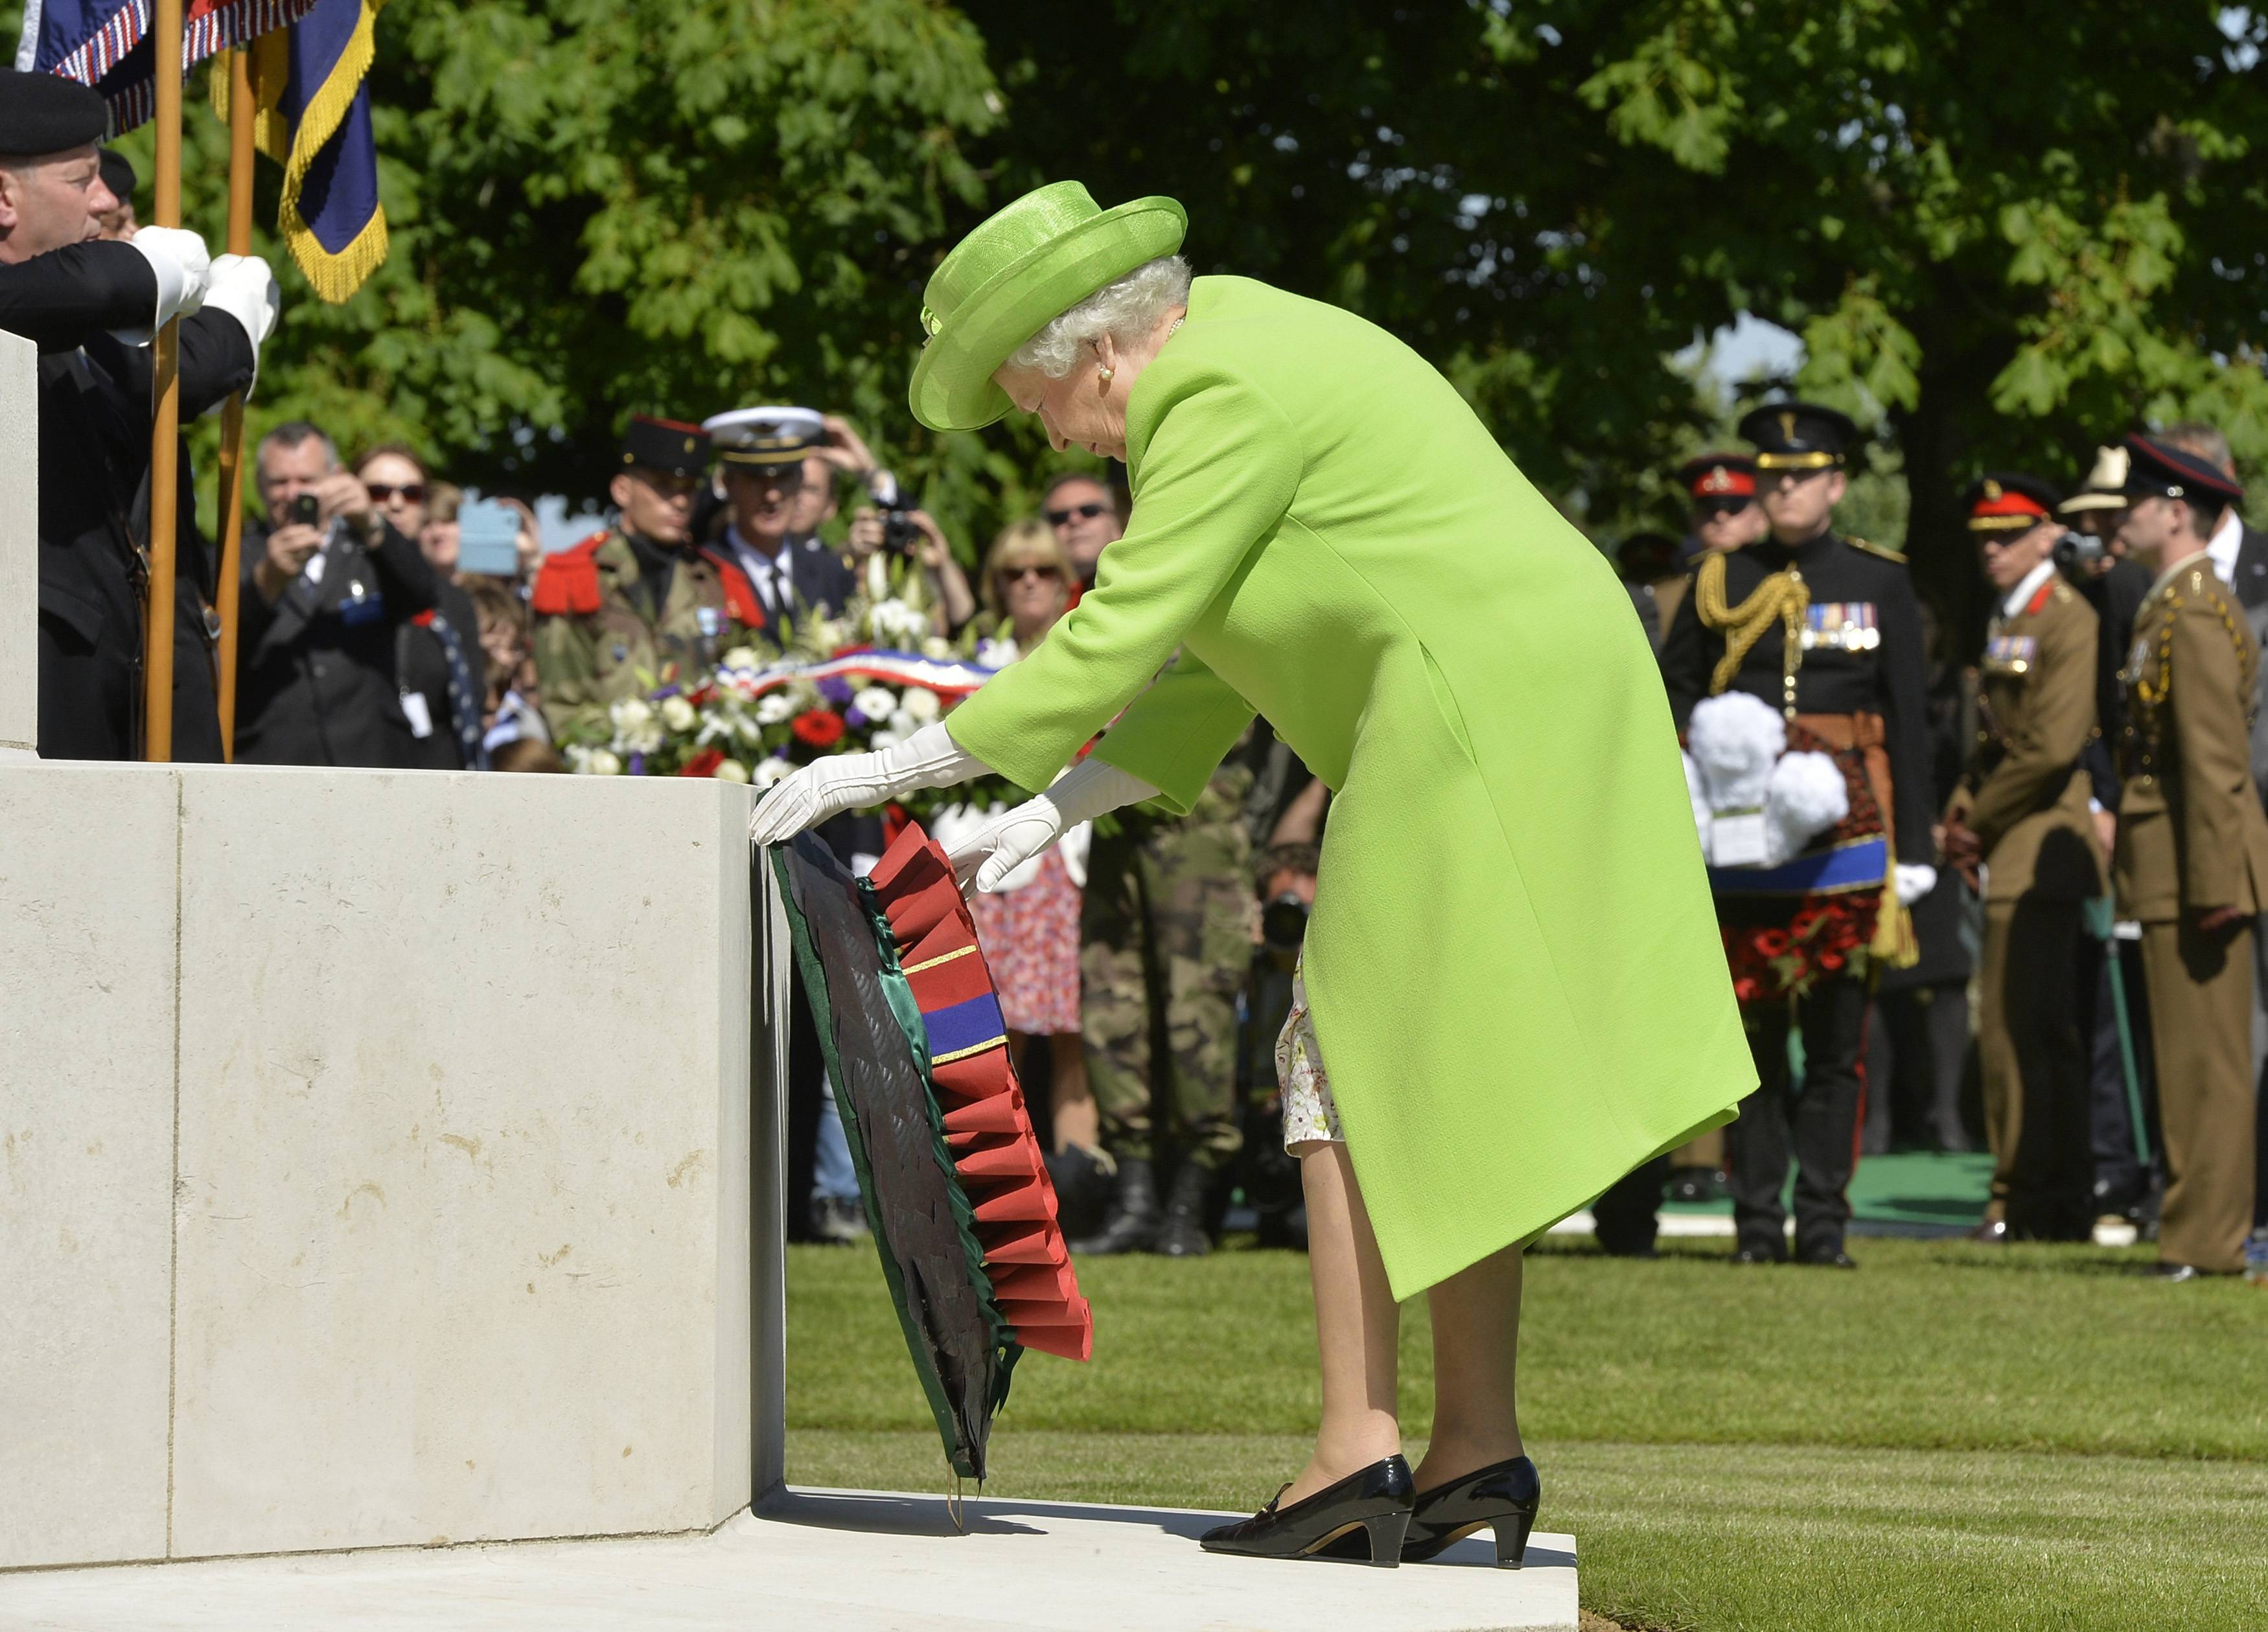 Though Queen Elizabeth II has cut back on making foreign trips, the 88-year-old British monarch traveled to France for the 70th anniversary of the D-Day landings in Normandy. And it's little wonder: she lived and lost through World War II and it marked her life more than many.